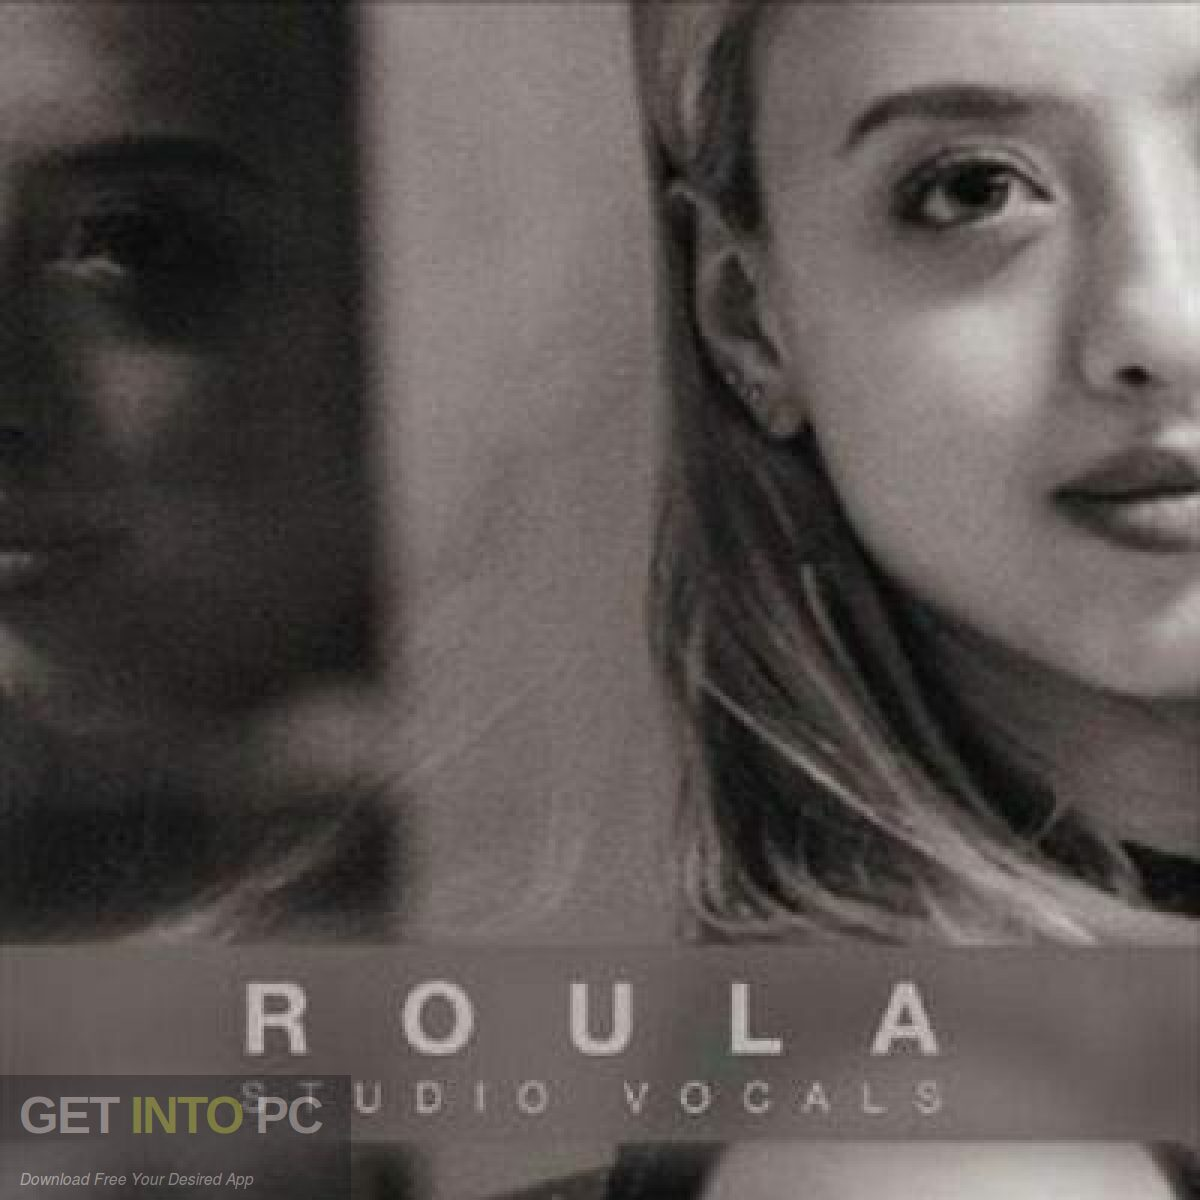 8Dio – Studio Vocals Roula Free Download PcHippo